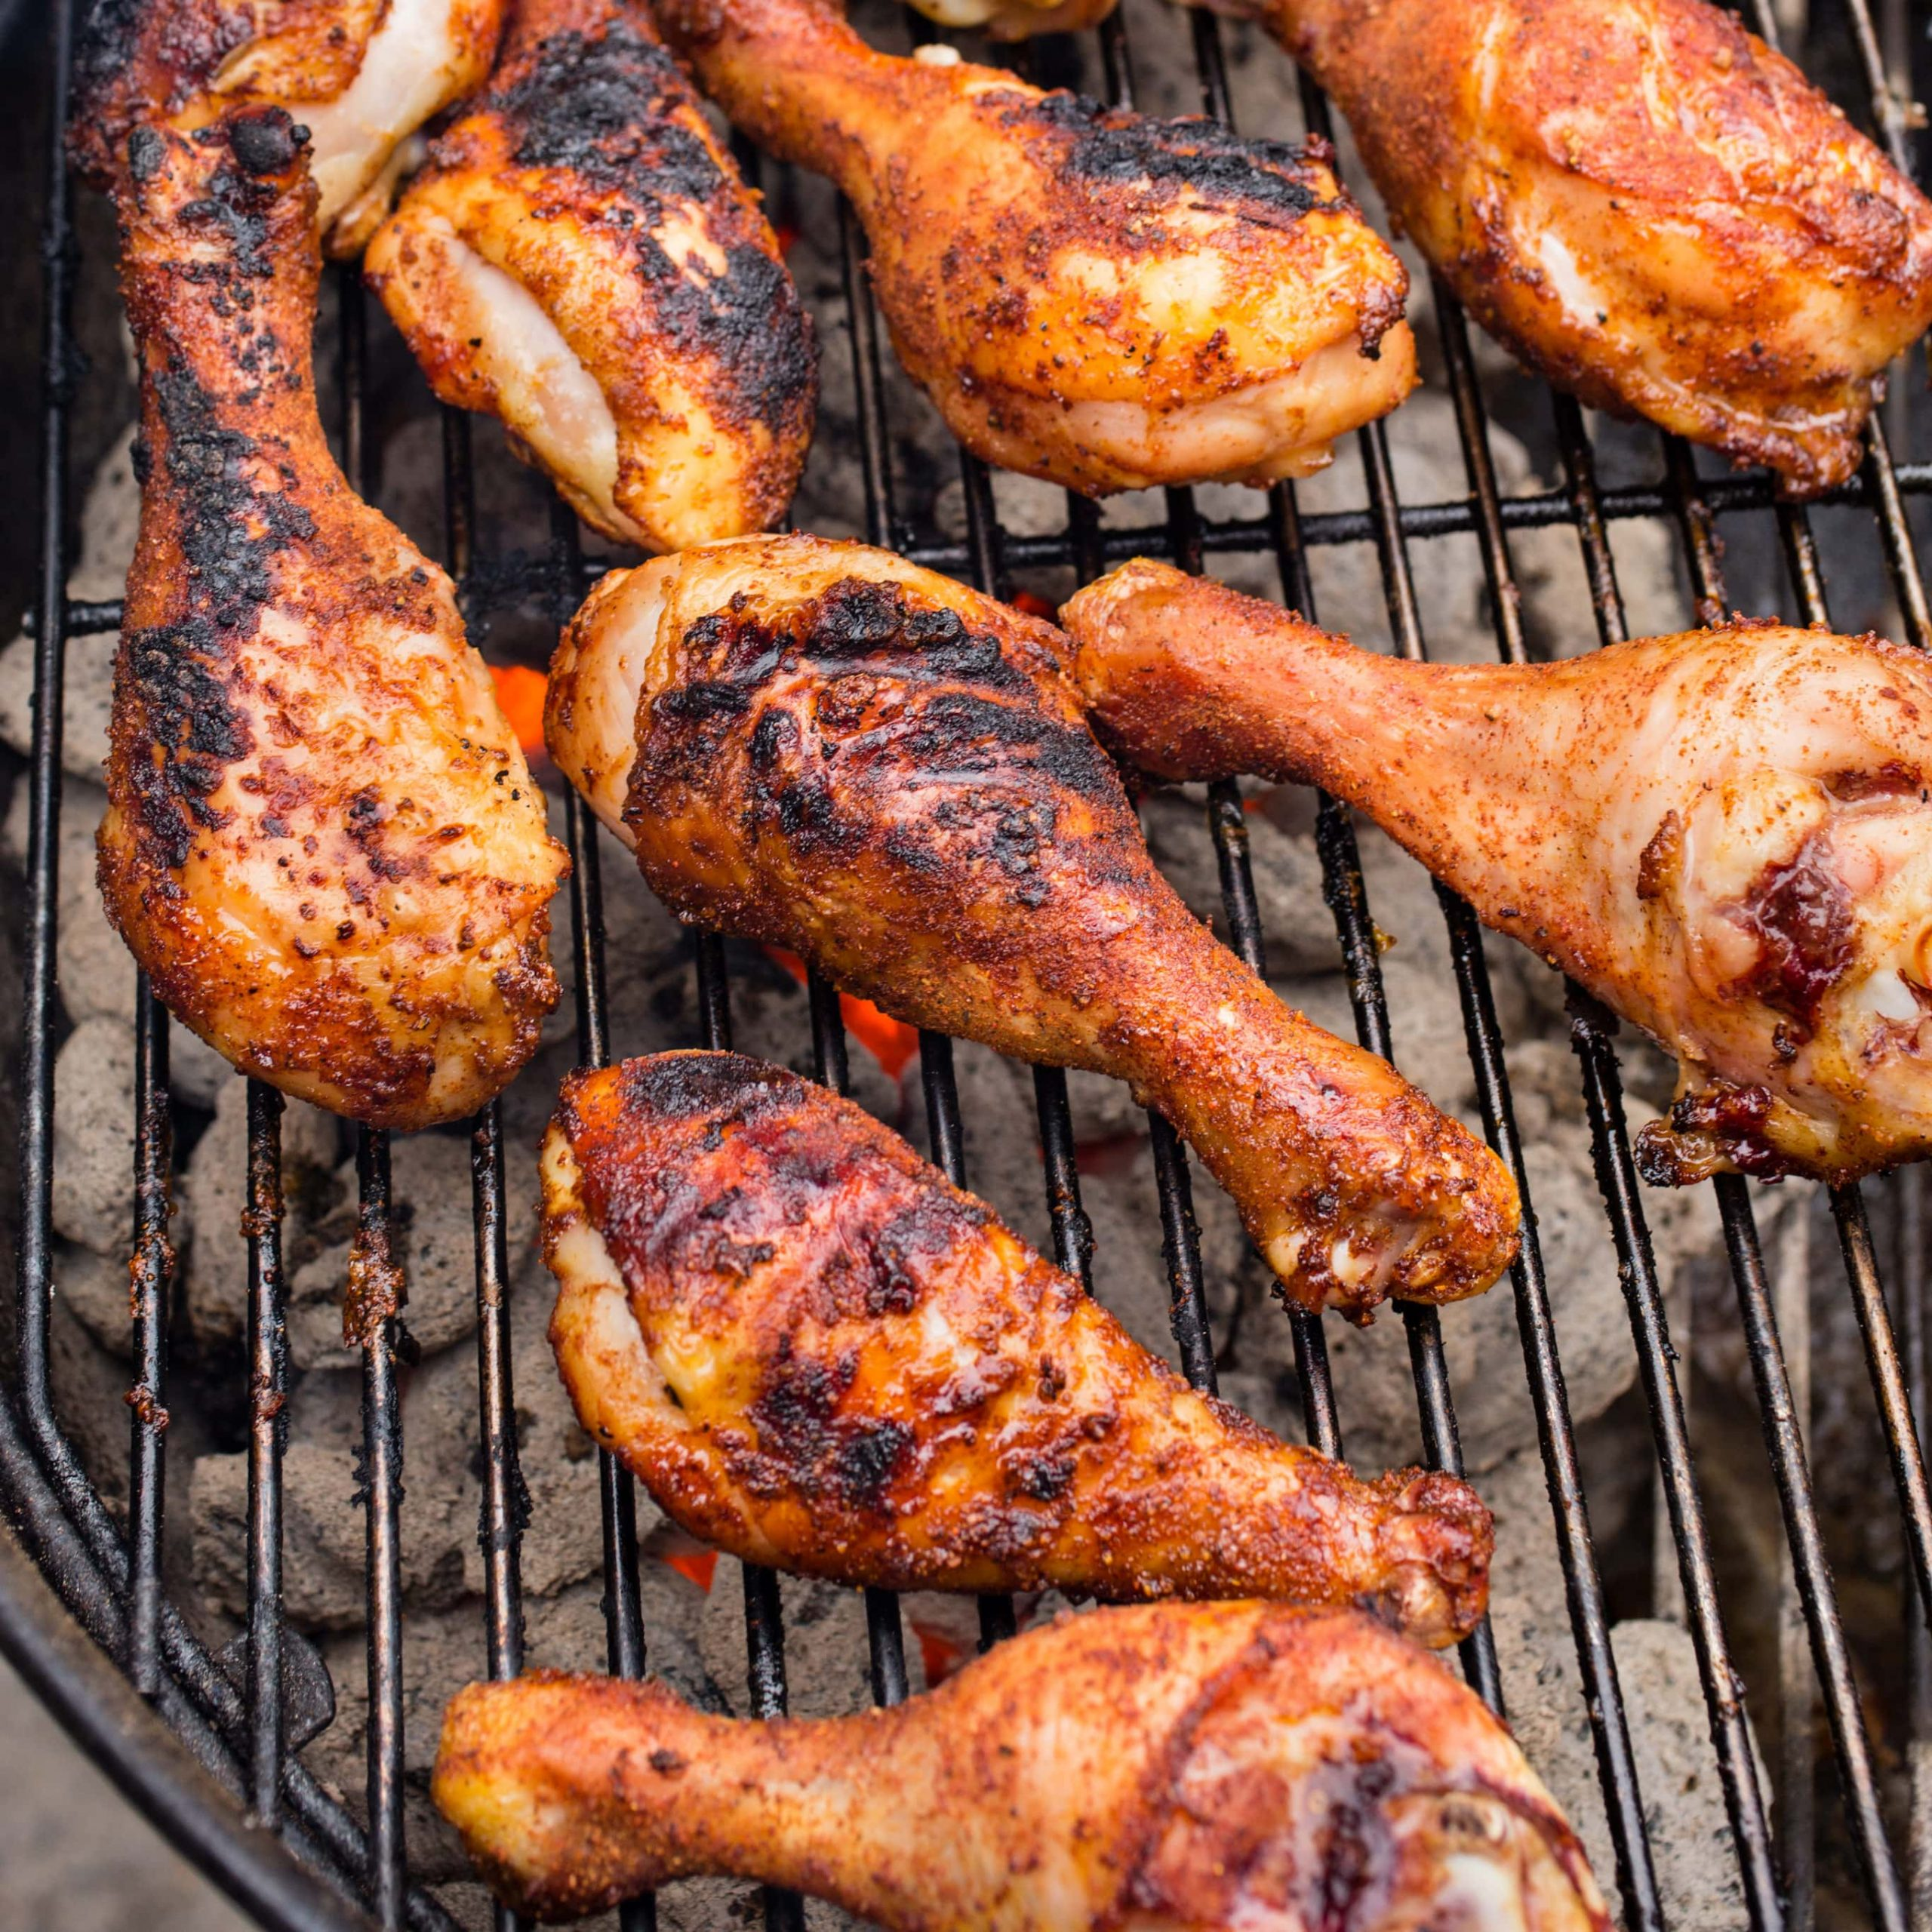 The Highest Quality Chicken For Express Delivery - Beck and Bulow